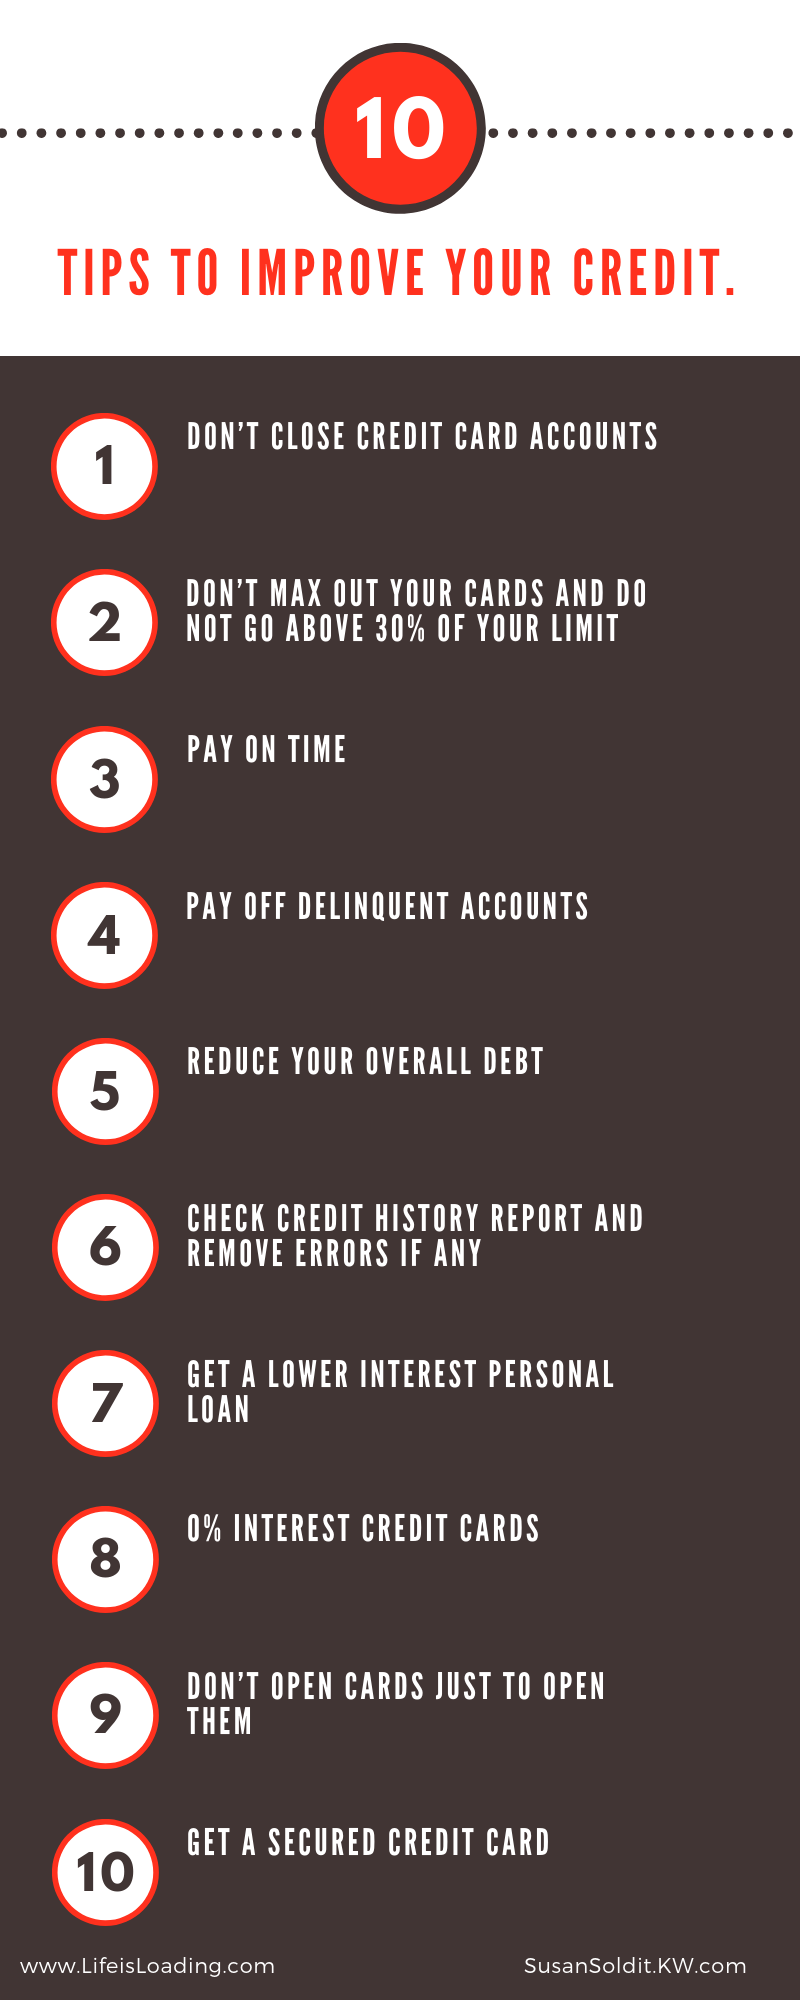 tips to improve your credit. (2).png